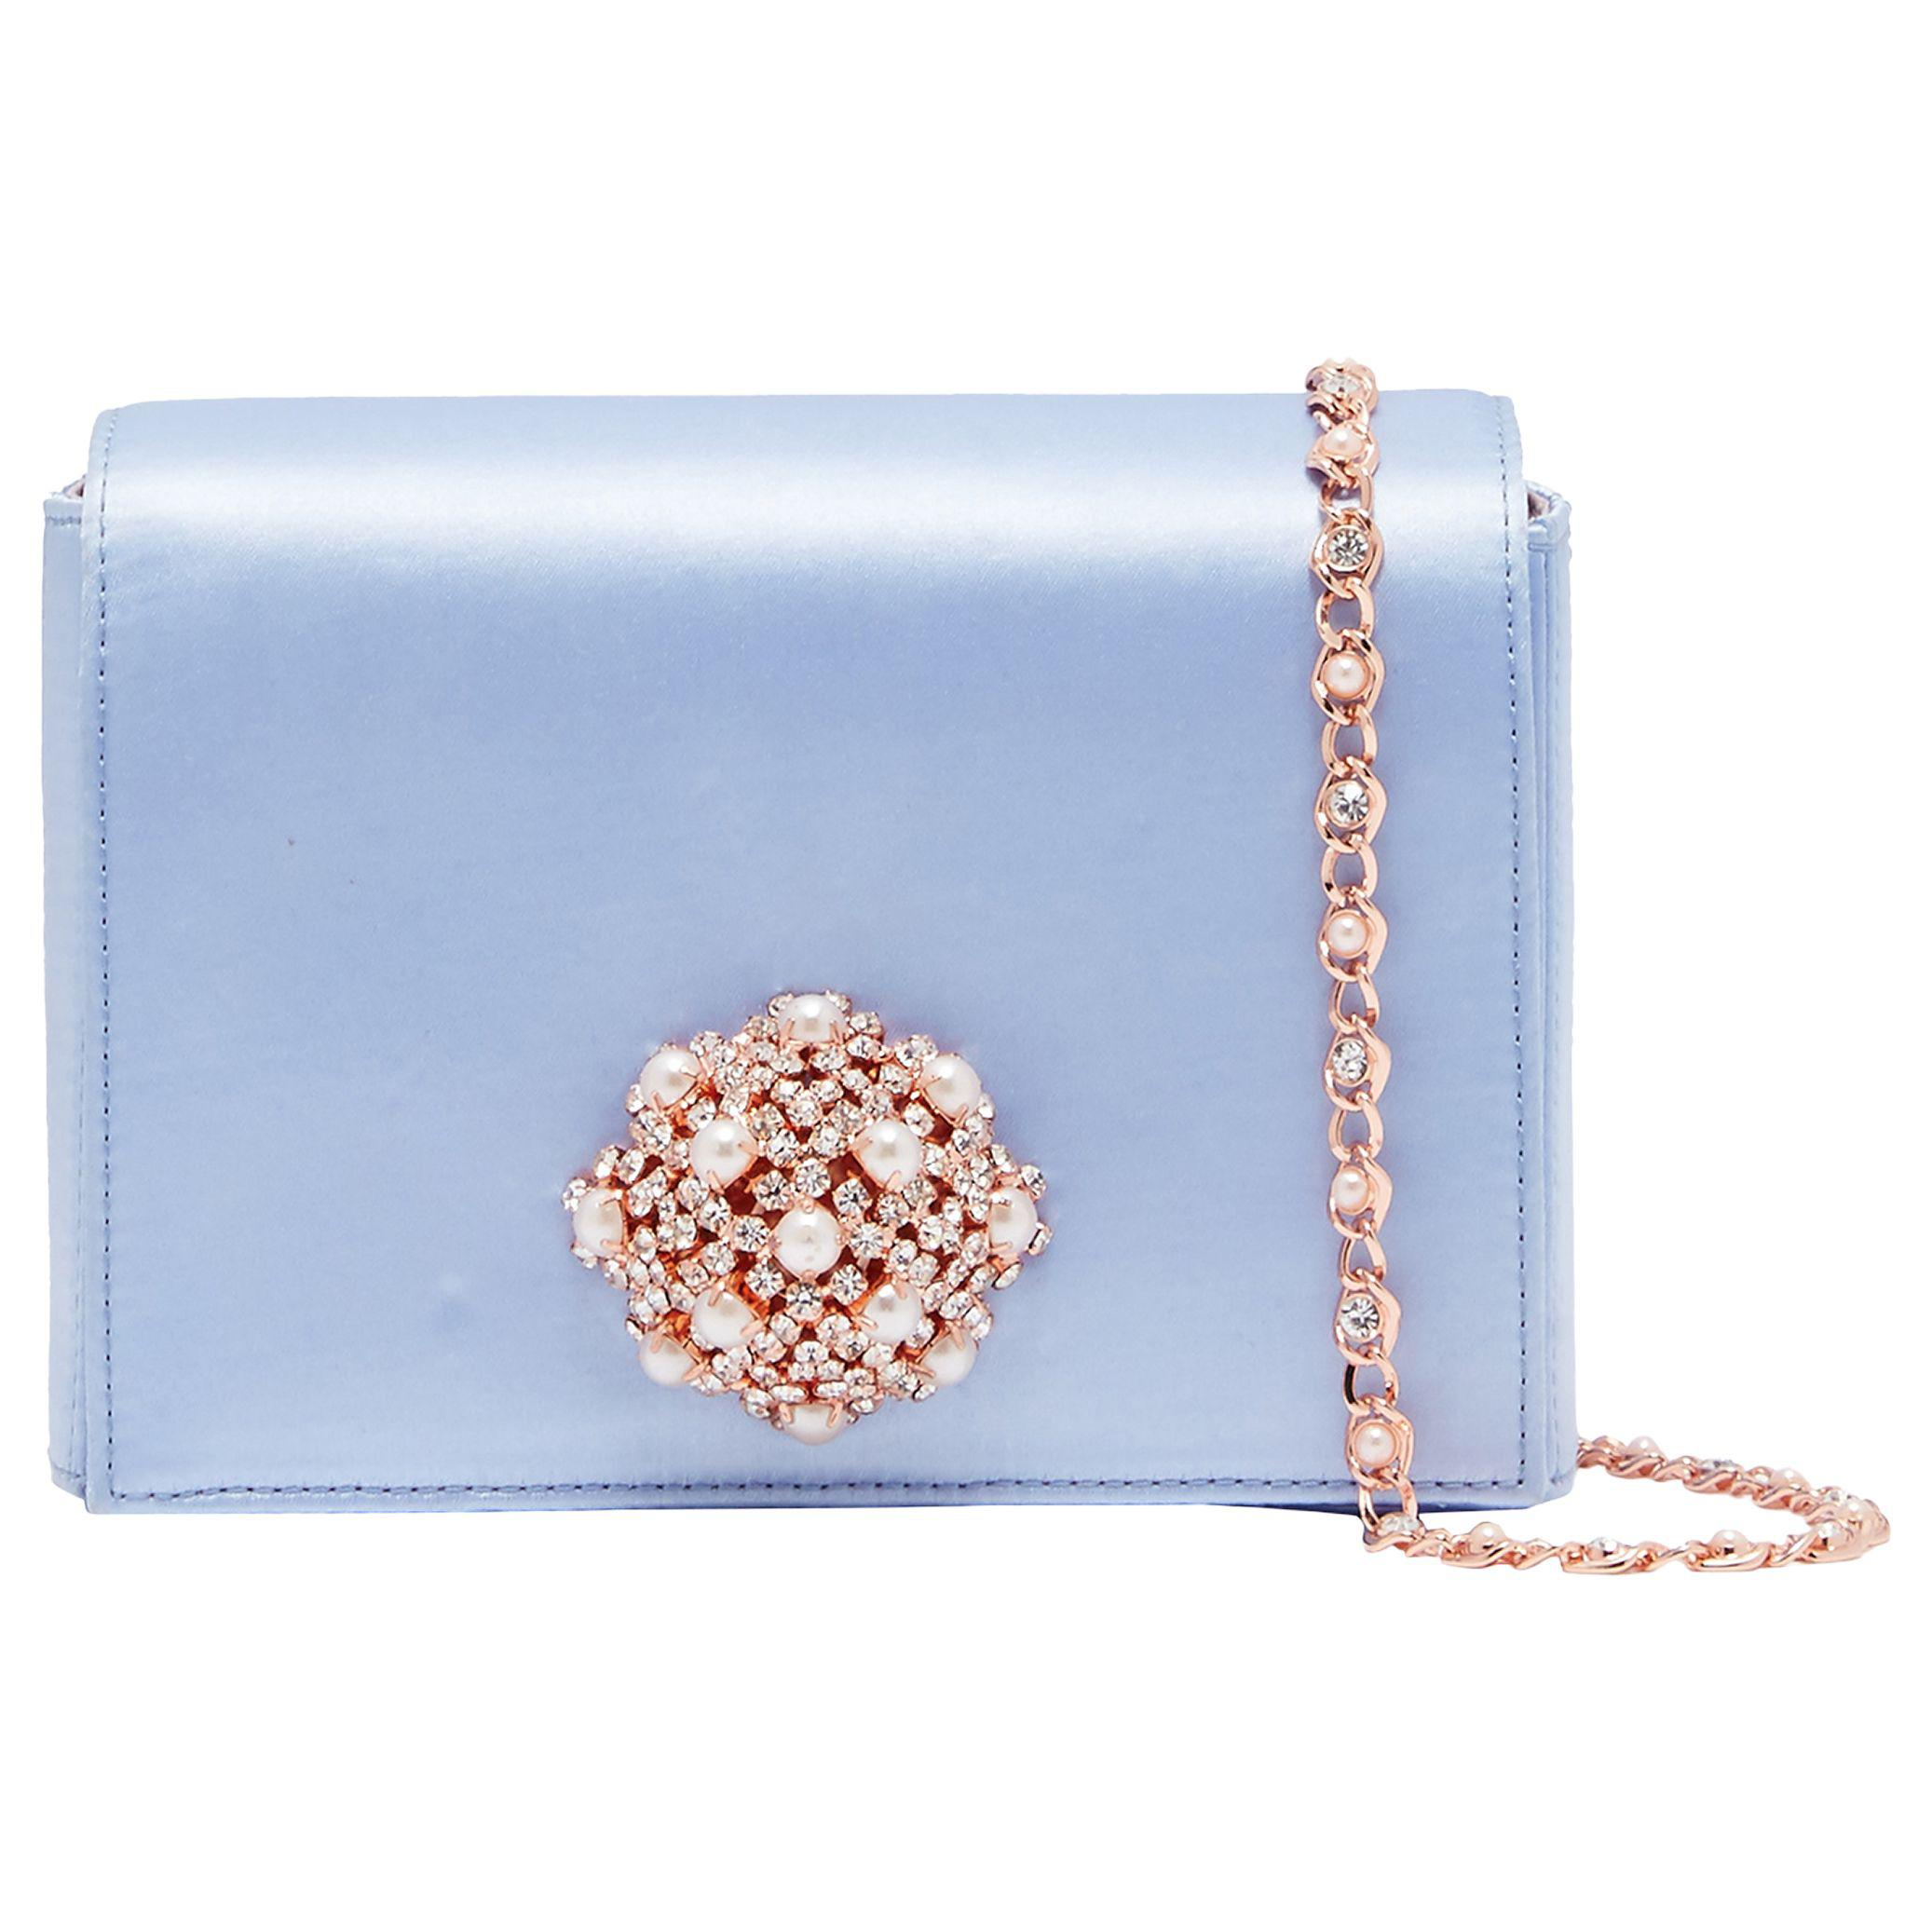 6b00dad6f78 Ted Baker Selinaa Clutch Bag in Blue - Lyst